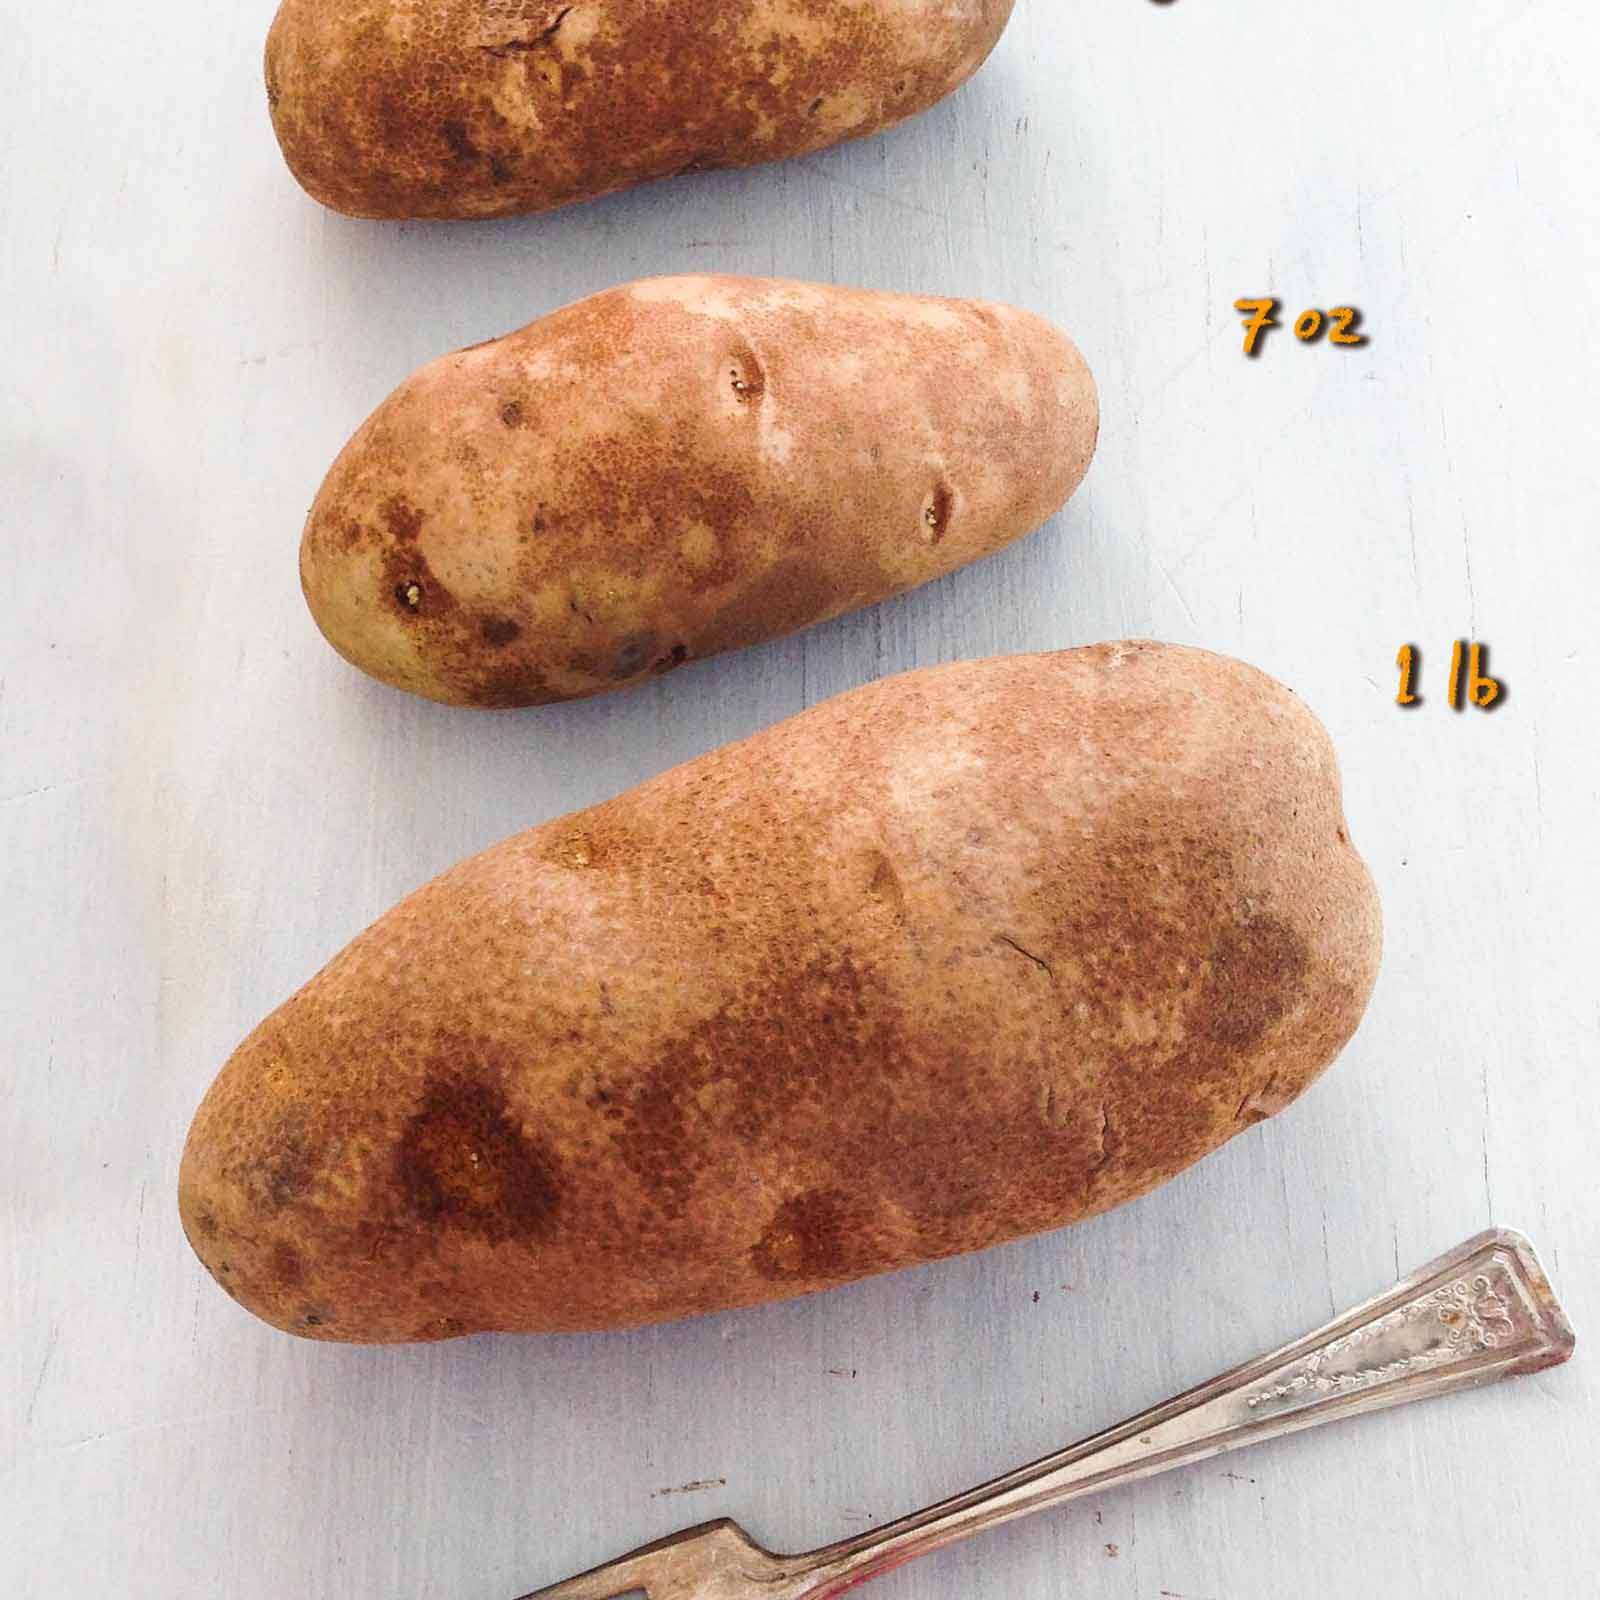 How to Make a Baked Potato in the Oven - potatoes lined up showing sizes